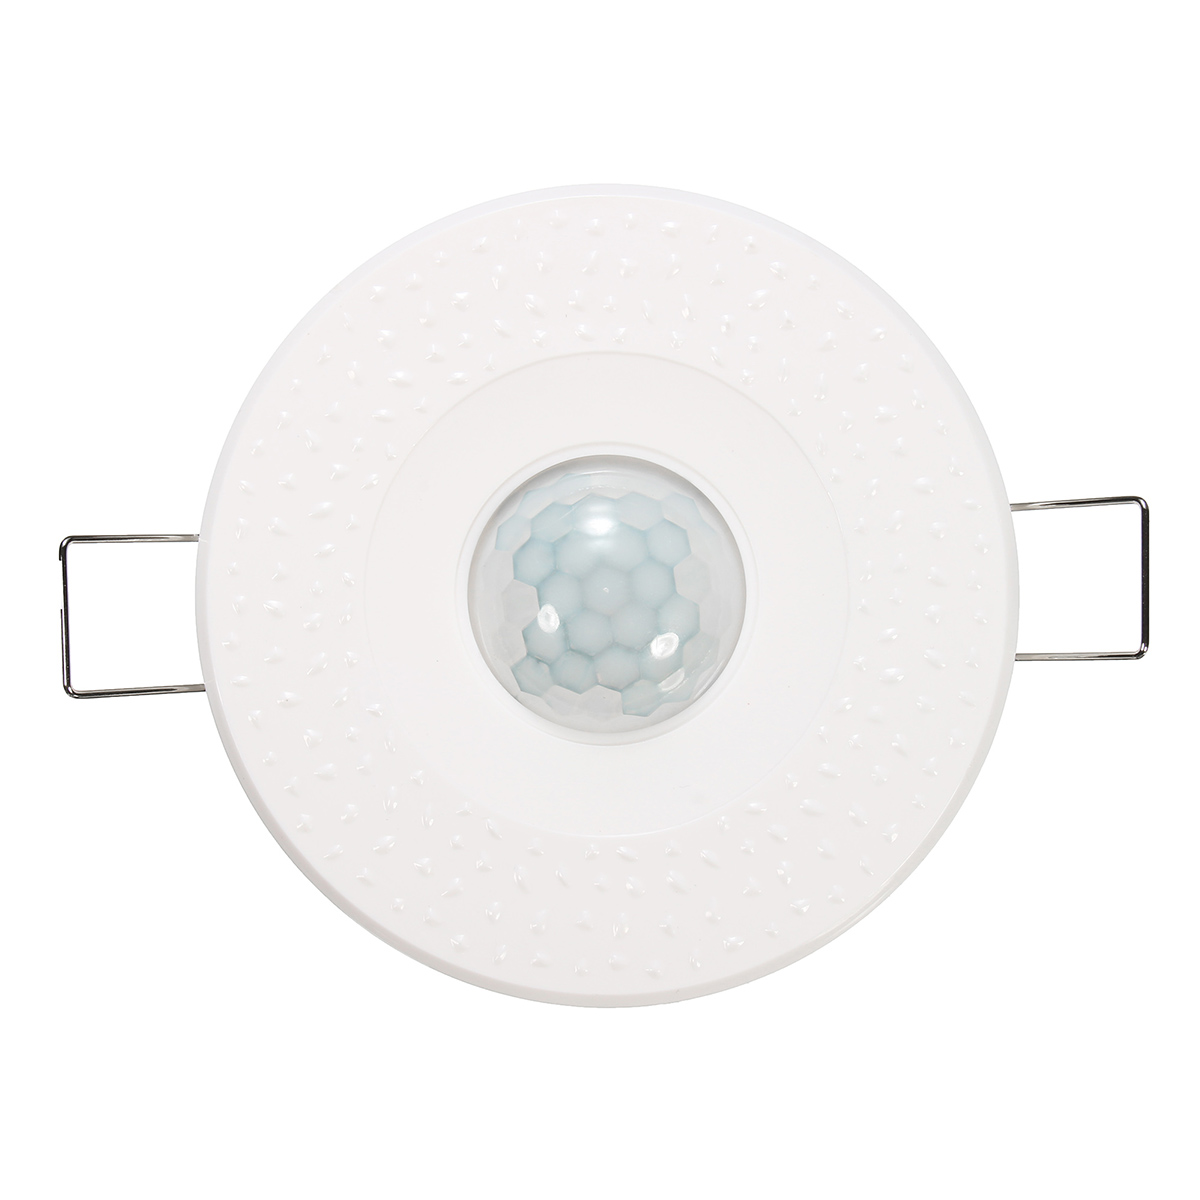 Safurance pir infrared motion sensor detector light switch hallway safurance pir infrared motion sensor detector light switch hallway ceiling occupancy lamp home security in building automation from security protection on mozeypictures Choice Image